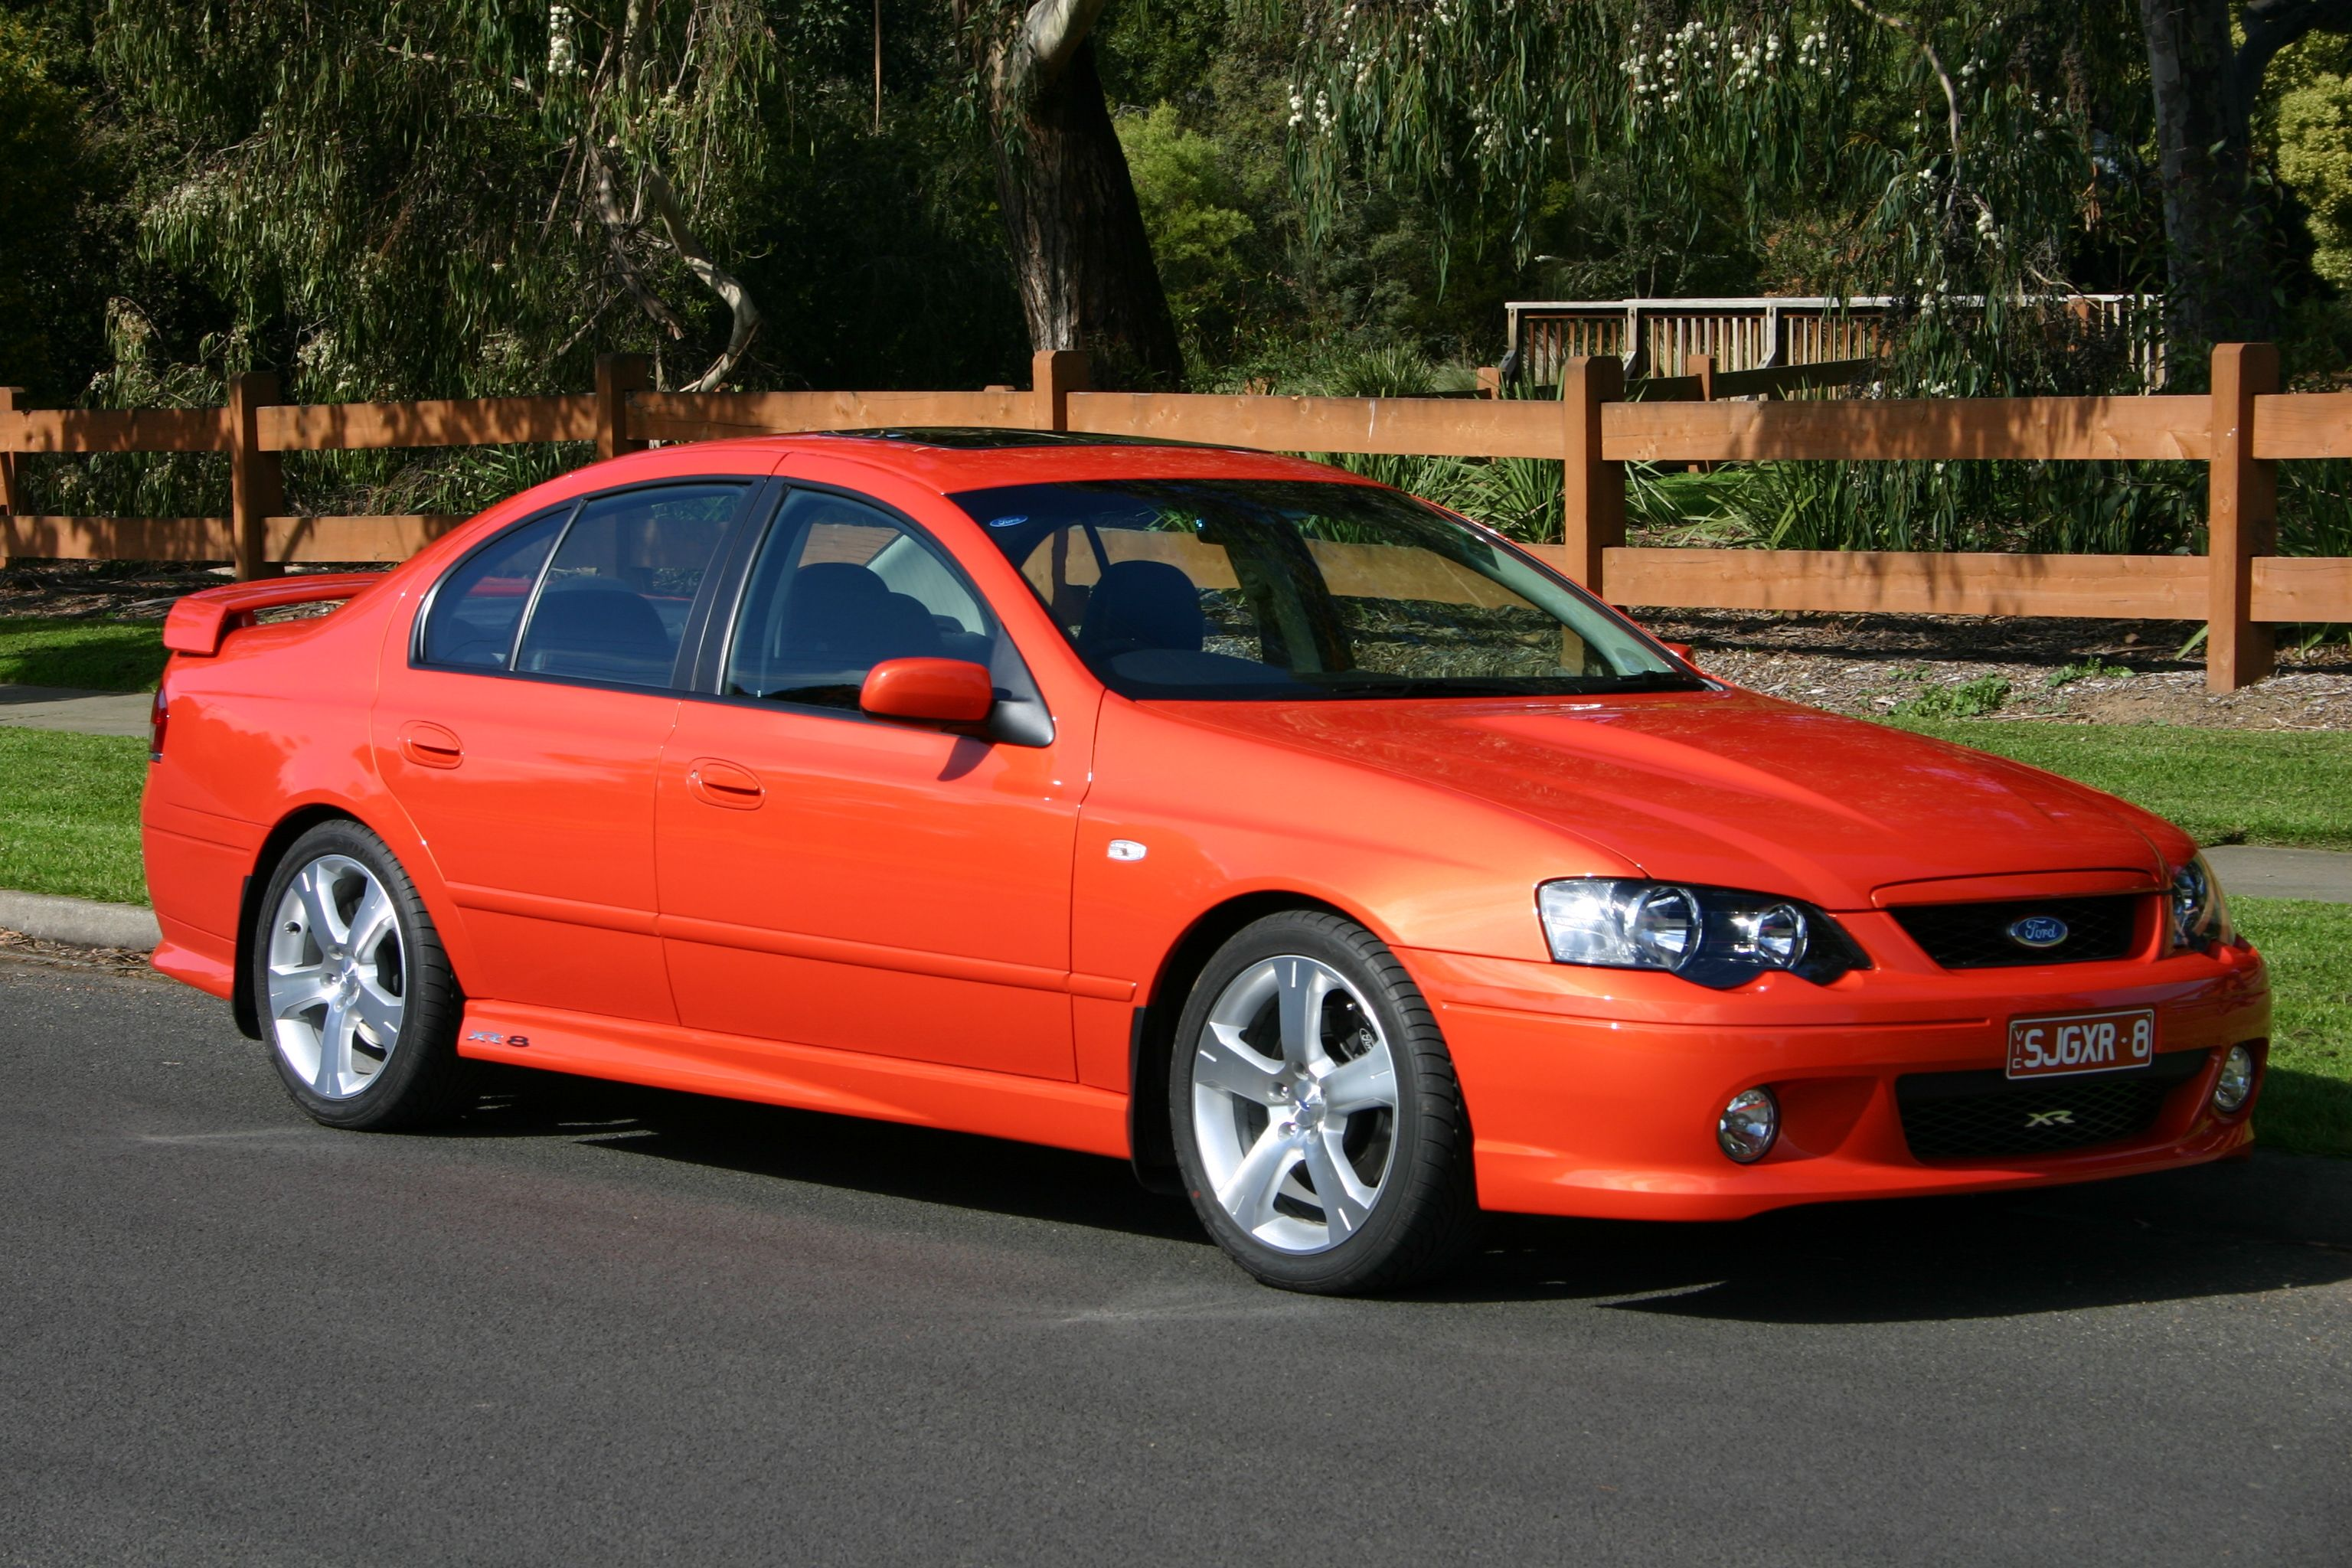 Ford 2004 Falcon BA XR8 BOSS 260 5.4L | My old Cars and ...